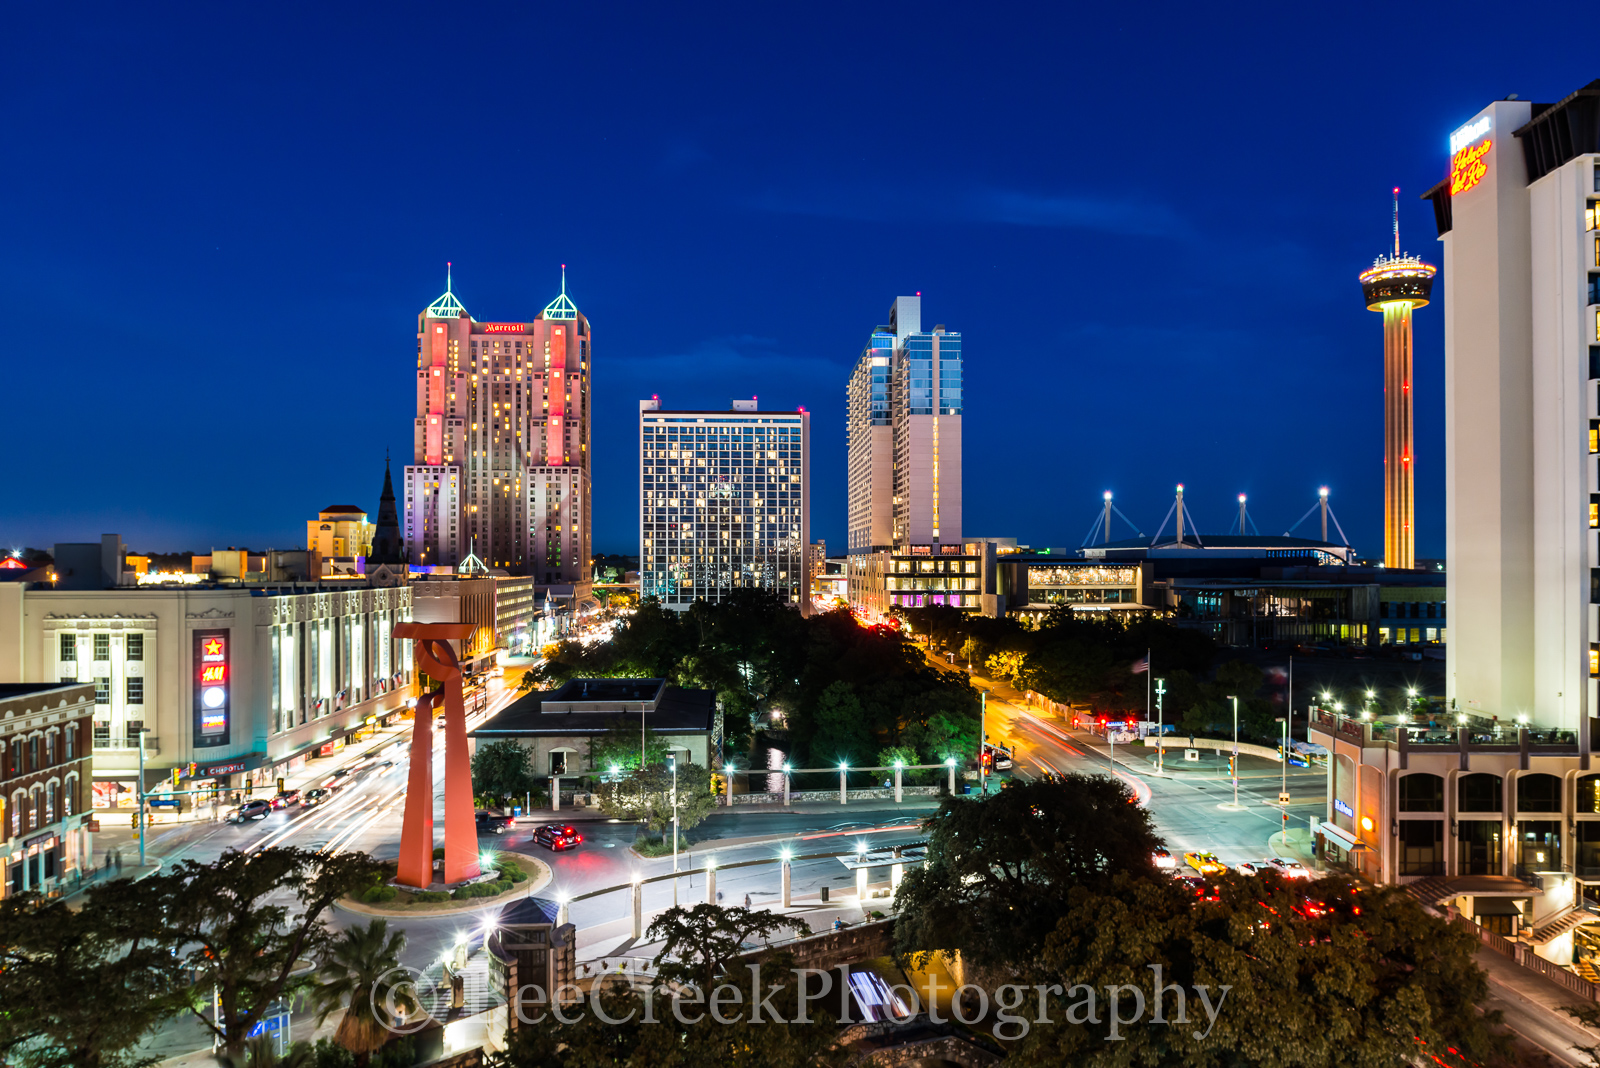 Grand Hyatt, Hilton, Marriott, San Antonio, Tod Grubbs, Torch or Friendship, Tower of Americas, beecreekphotography, city, cityscape, cityscapes, destination, downtown, night, riiverwalk, skyline, sky, photo